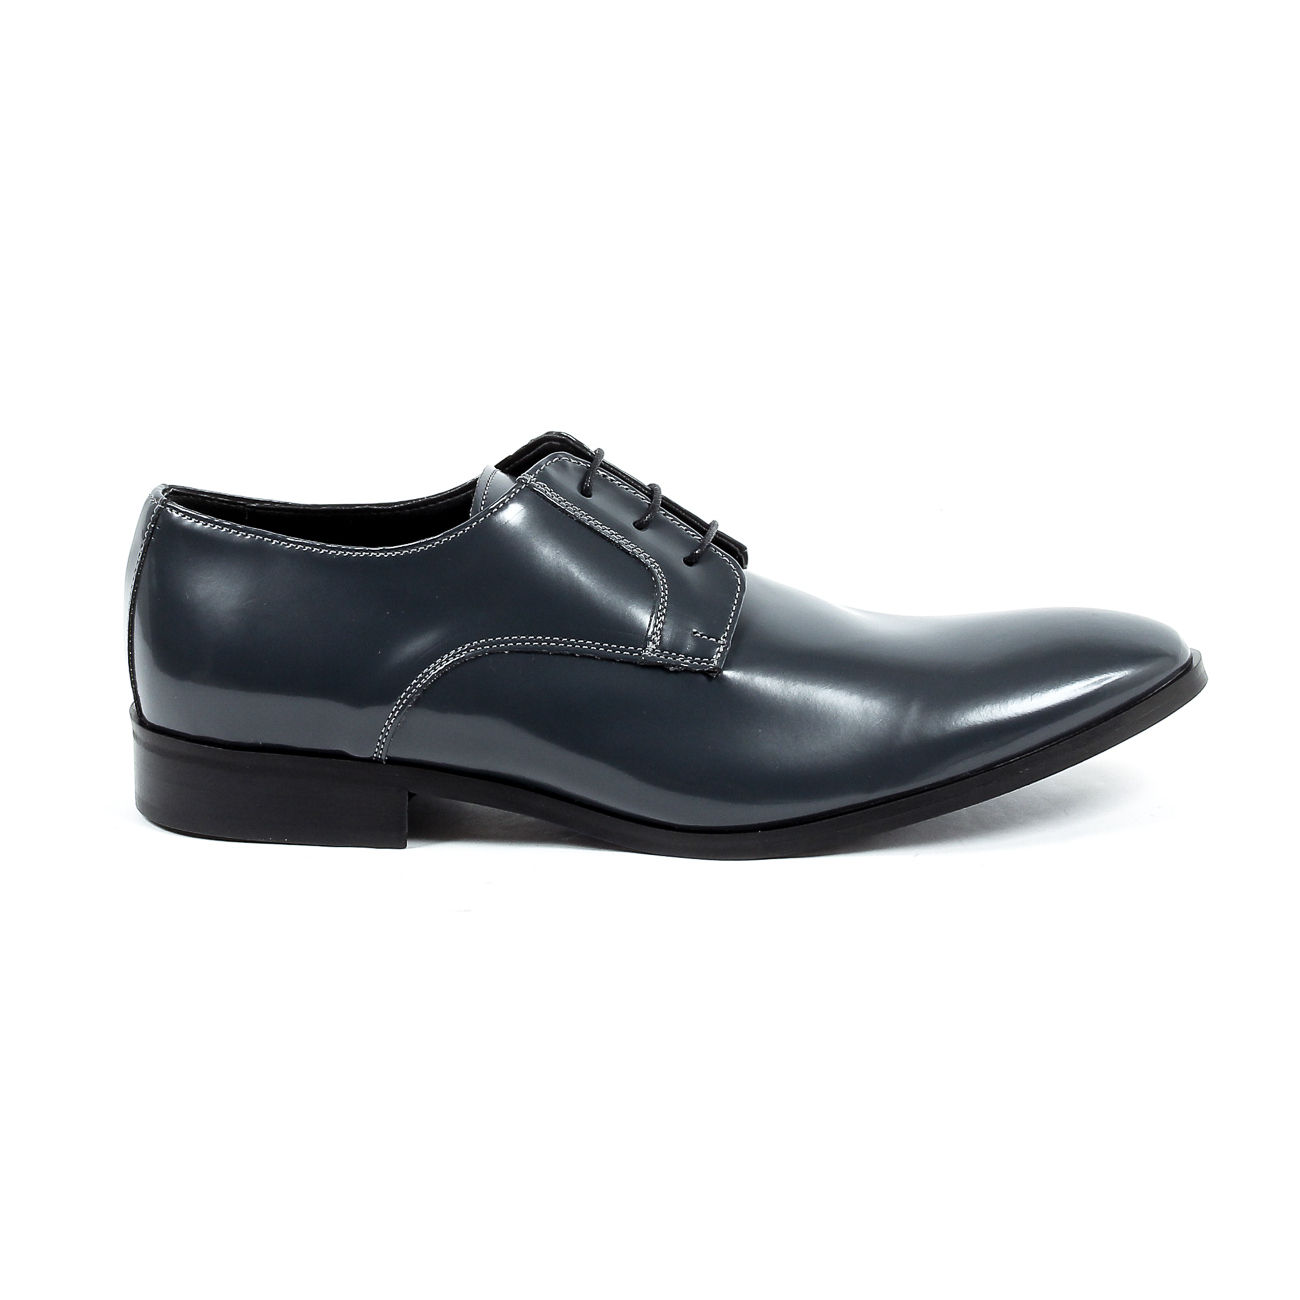 v 1969 italia mens classic shoe buy2bee